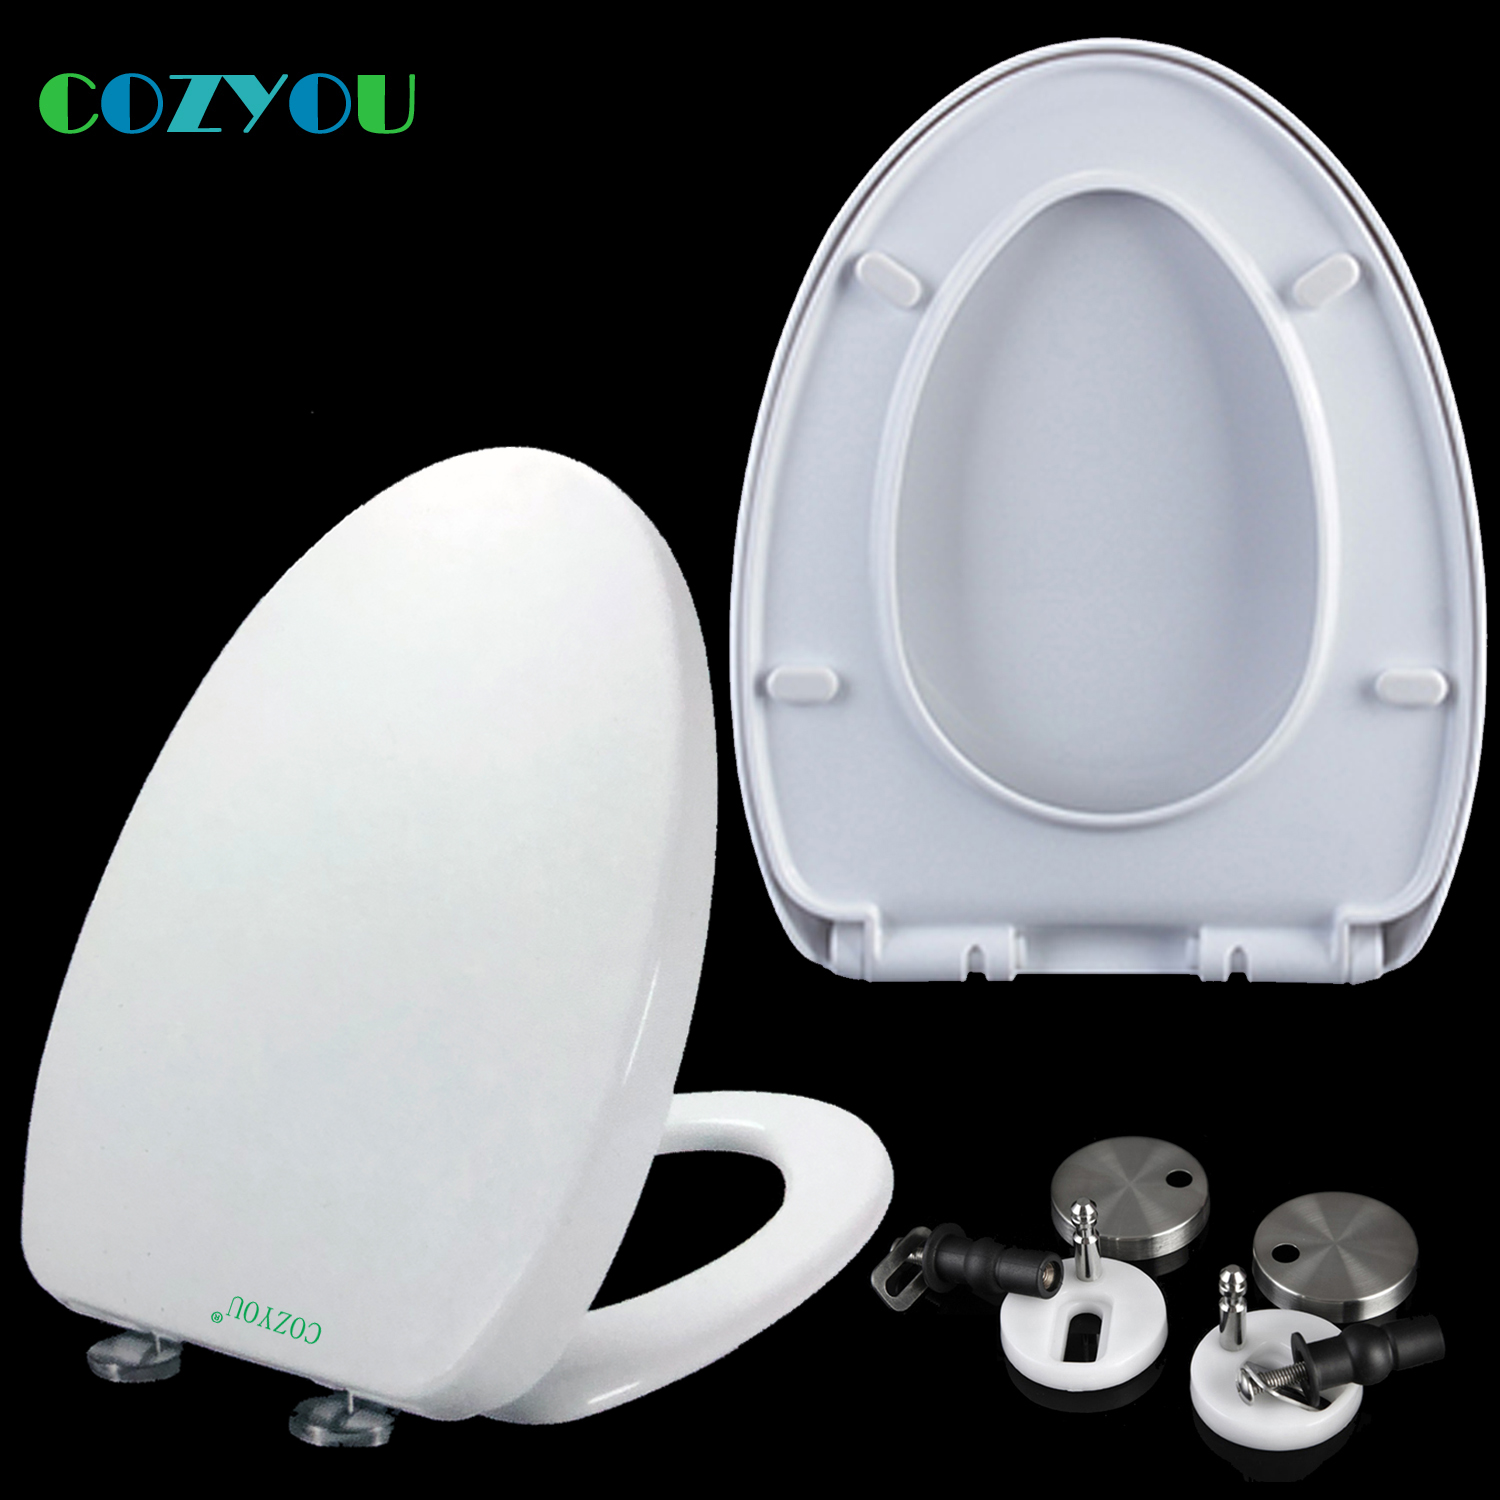 COZYOU PP Toilet seat V style soft Close Double button Quick-Release Length 450mm - 500mm Width 360mm - 370mm GBP17312SV